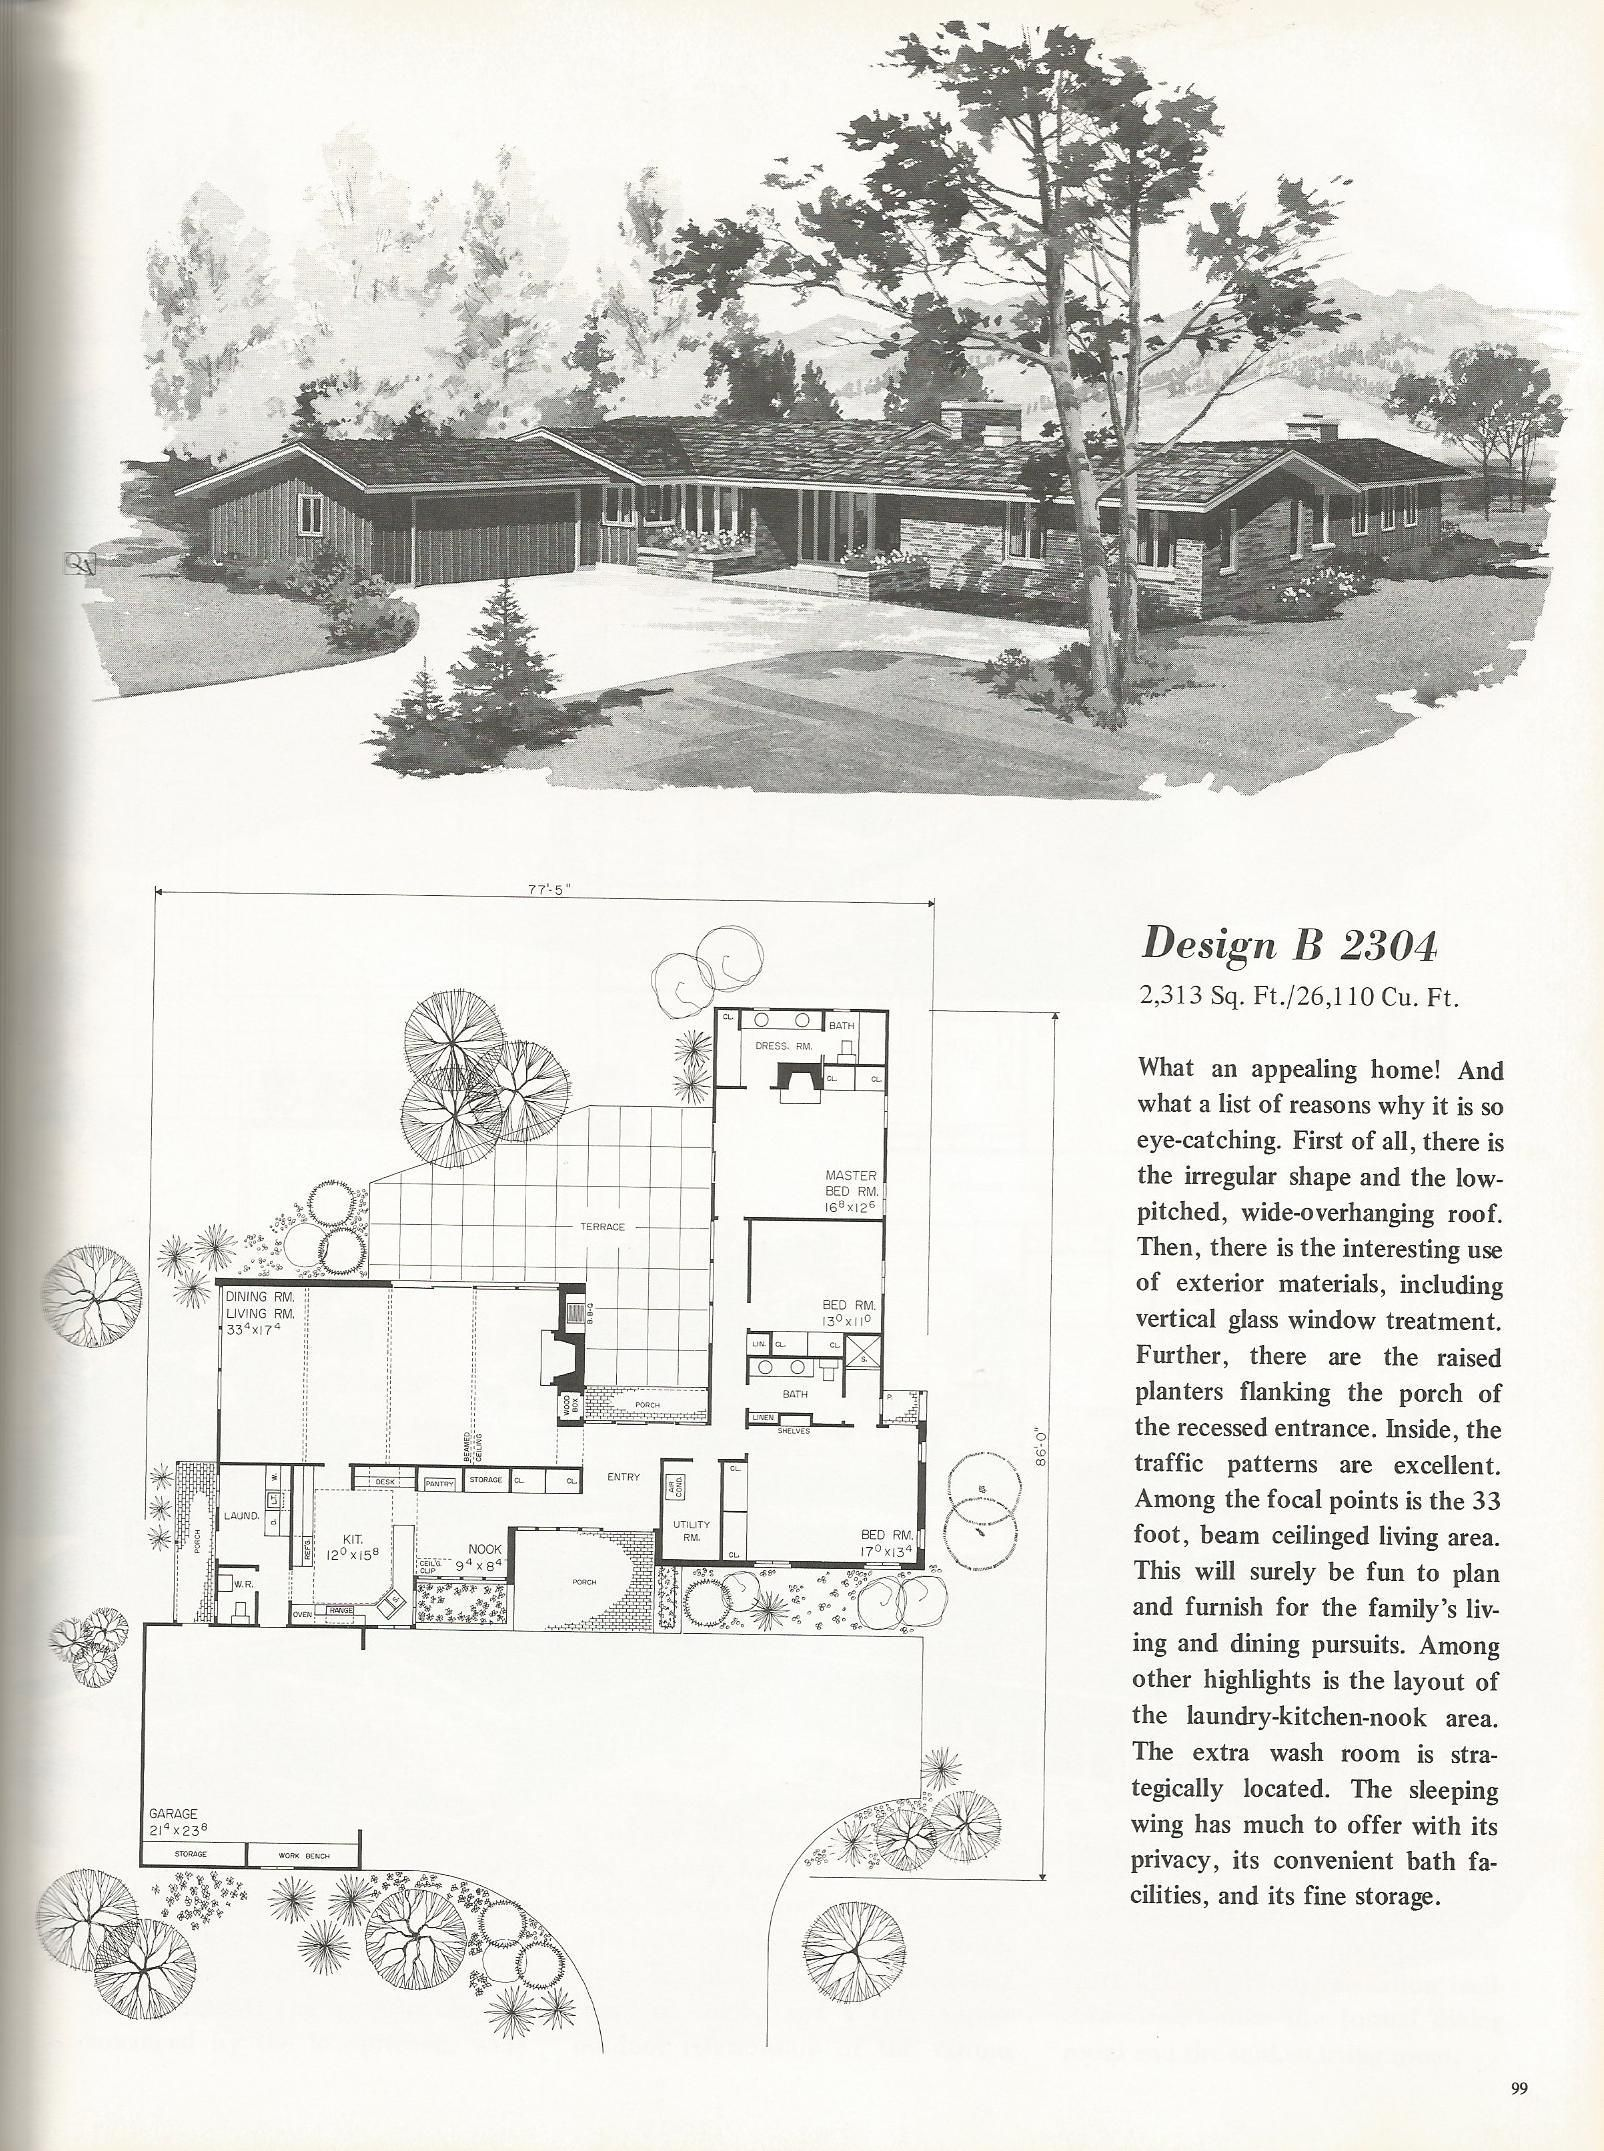 Vintage Farmhouse Plans vintage house plans, mid century homes, large homes | vintage